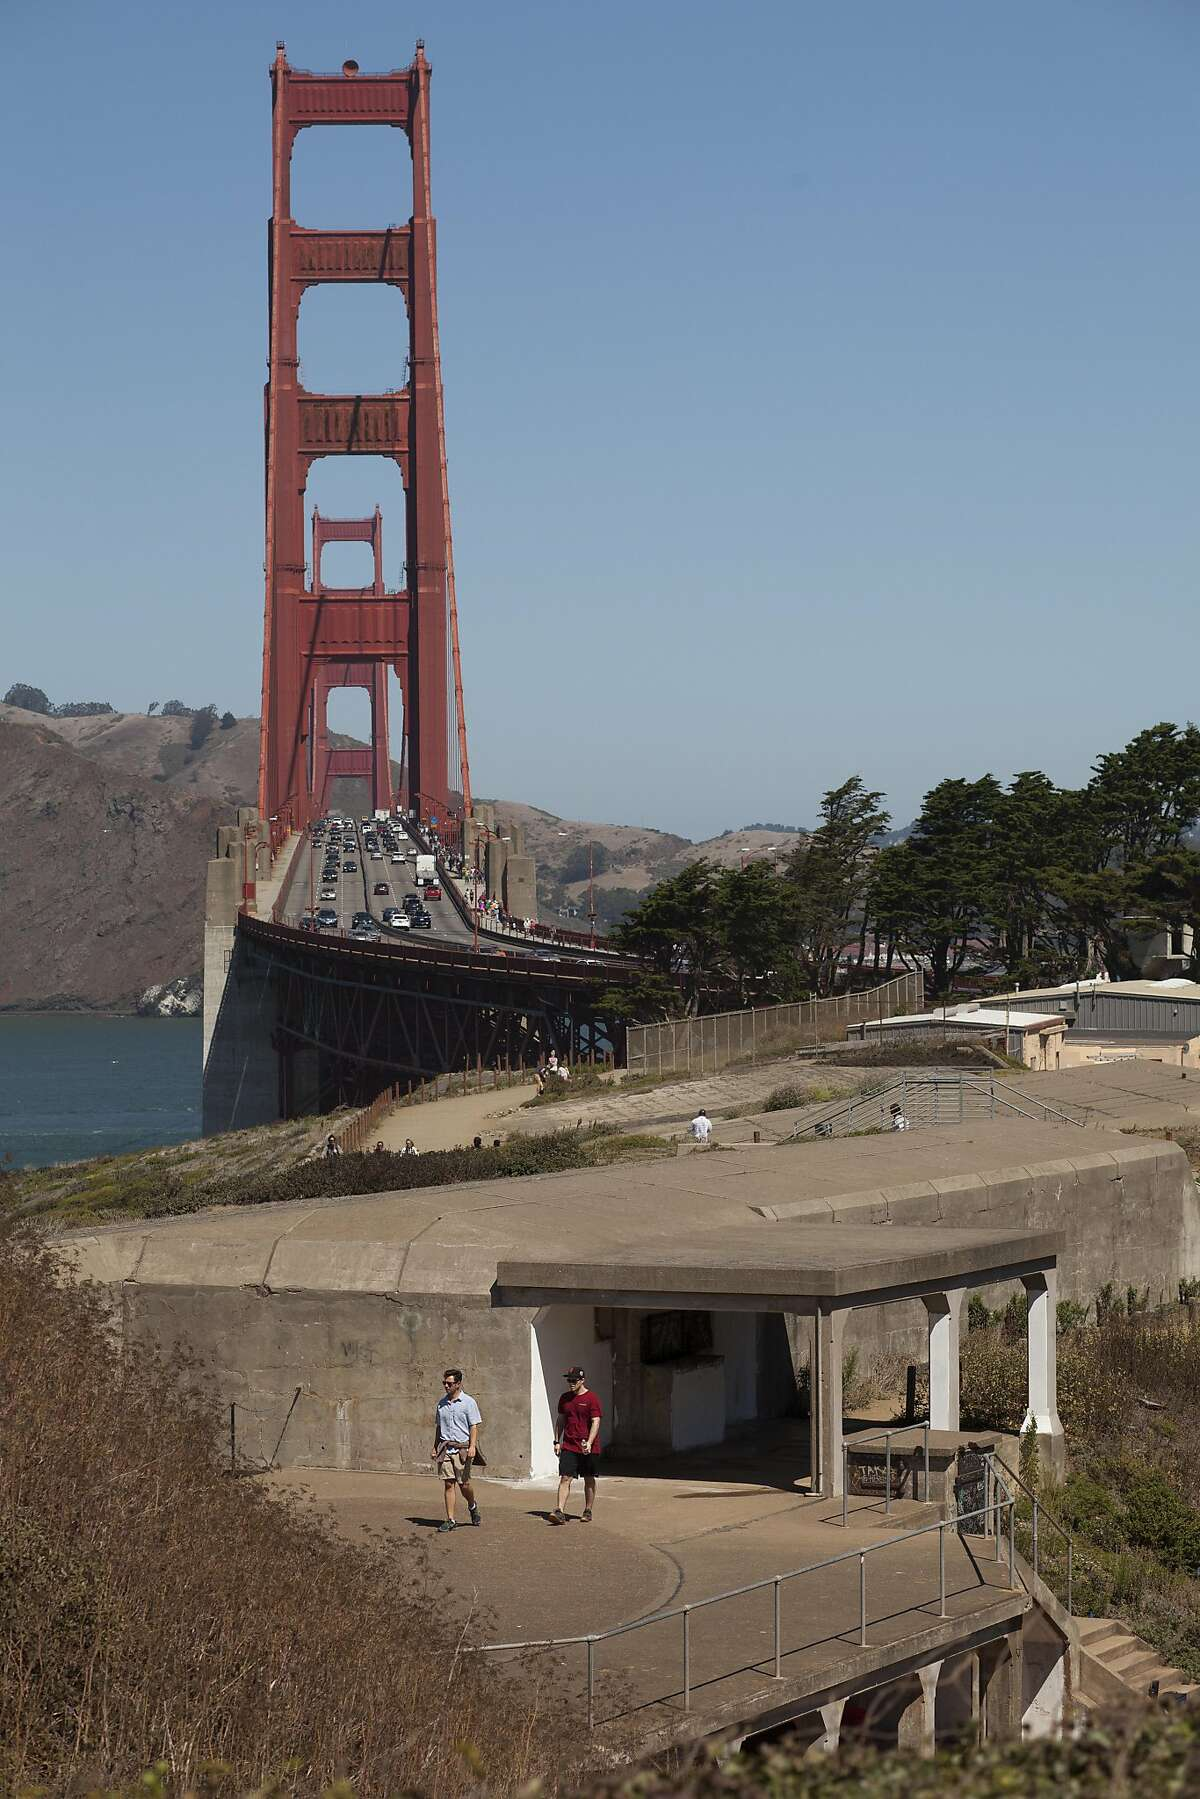 Tourist stroll over the top of Battery Marcus Miller, a partially underground, reinforced-concrete bunker, being used as a gallery space for the Home Land Security Exhibition in the Historic Military-Defense Structures in the Presidio over looking the Golden Gate bridge, in San Francisco, California, USA 30 Aug 2016. (Peter DaSilva/Special to The Chronicle)